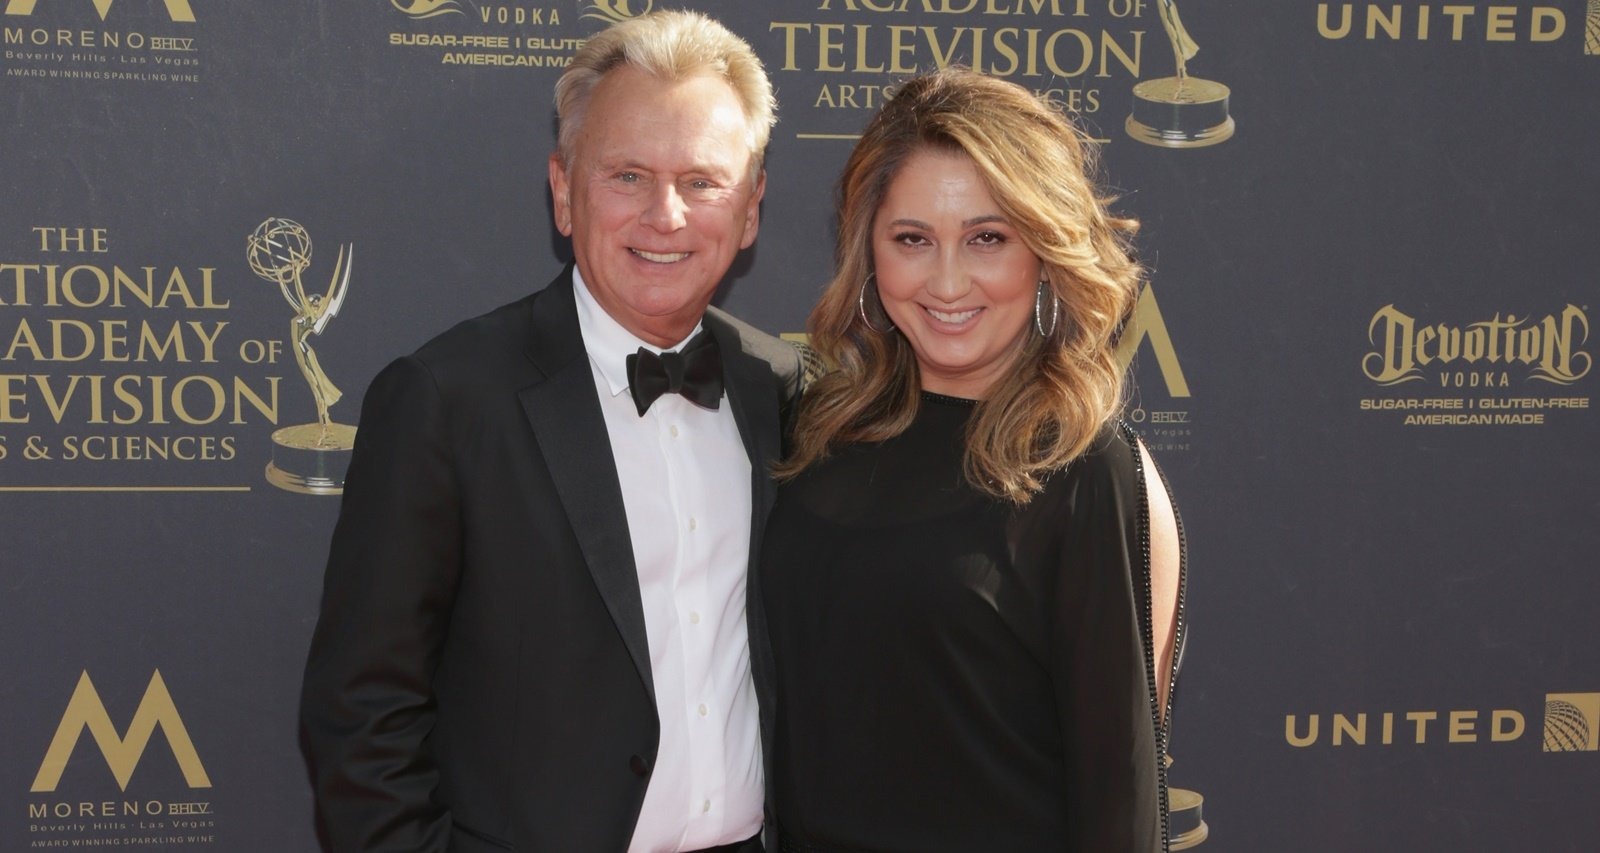 Who Is Pat Sajak's Wife? Wiki, Age and Facts About Lesly Brown